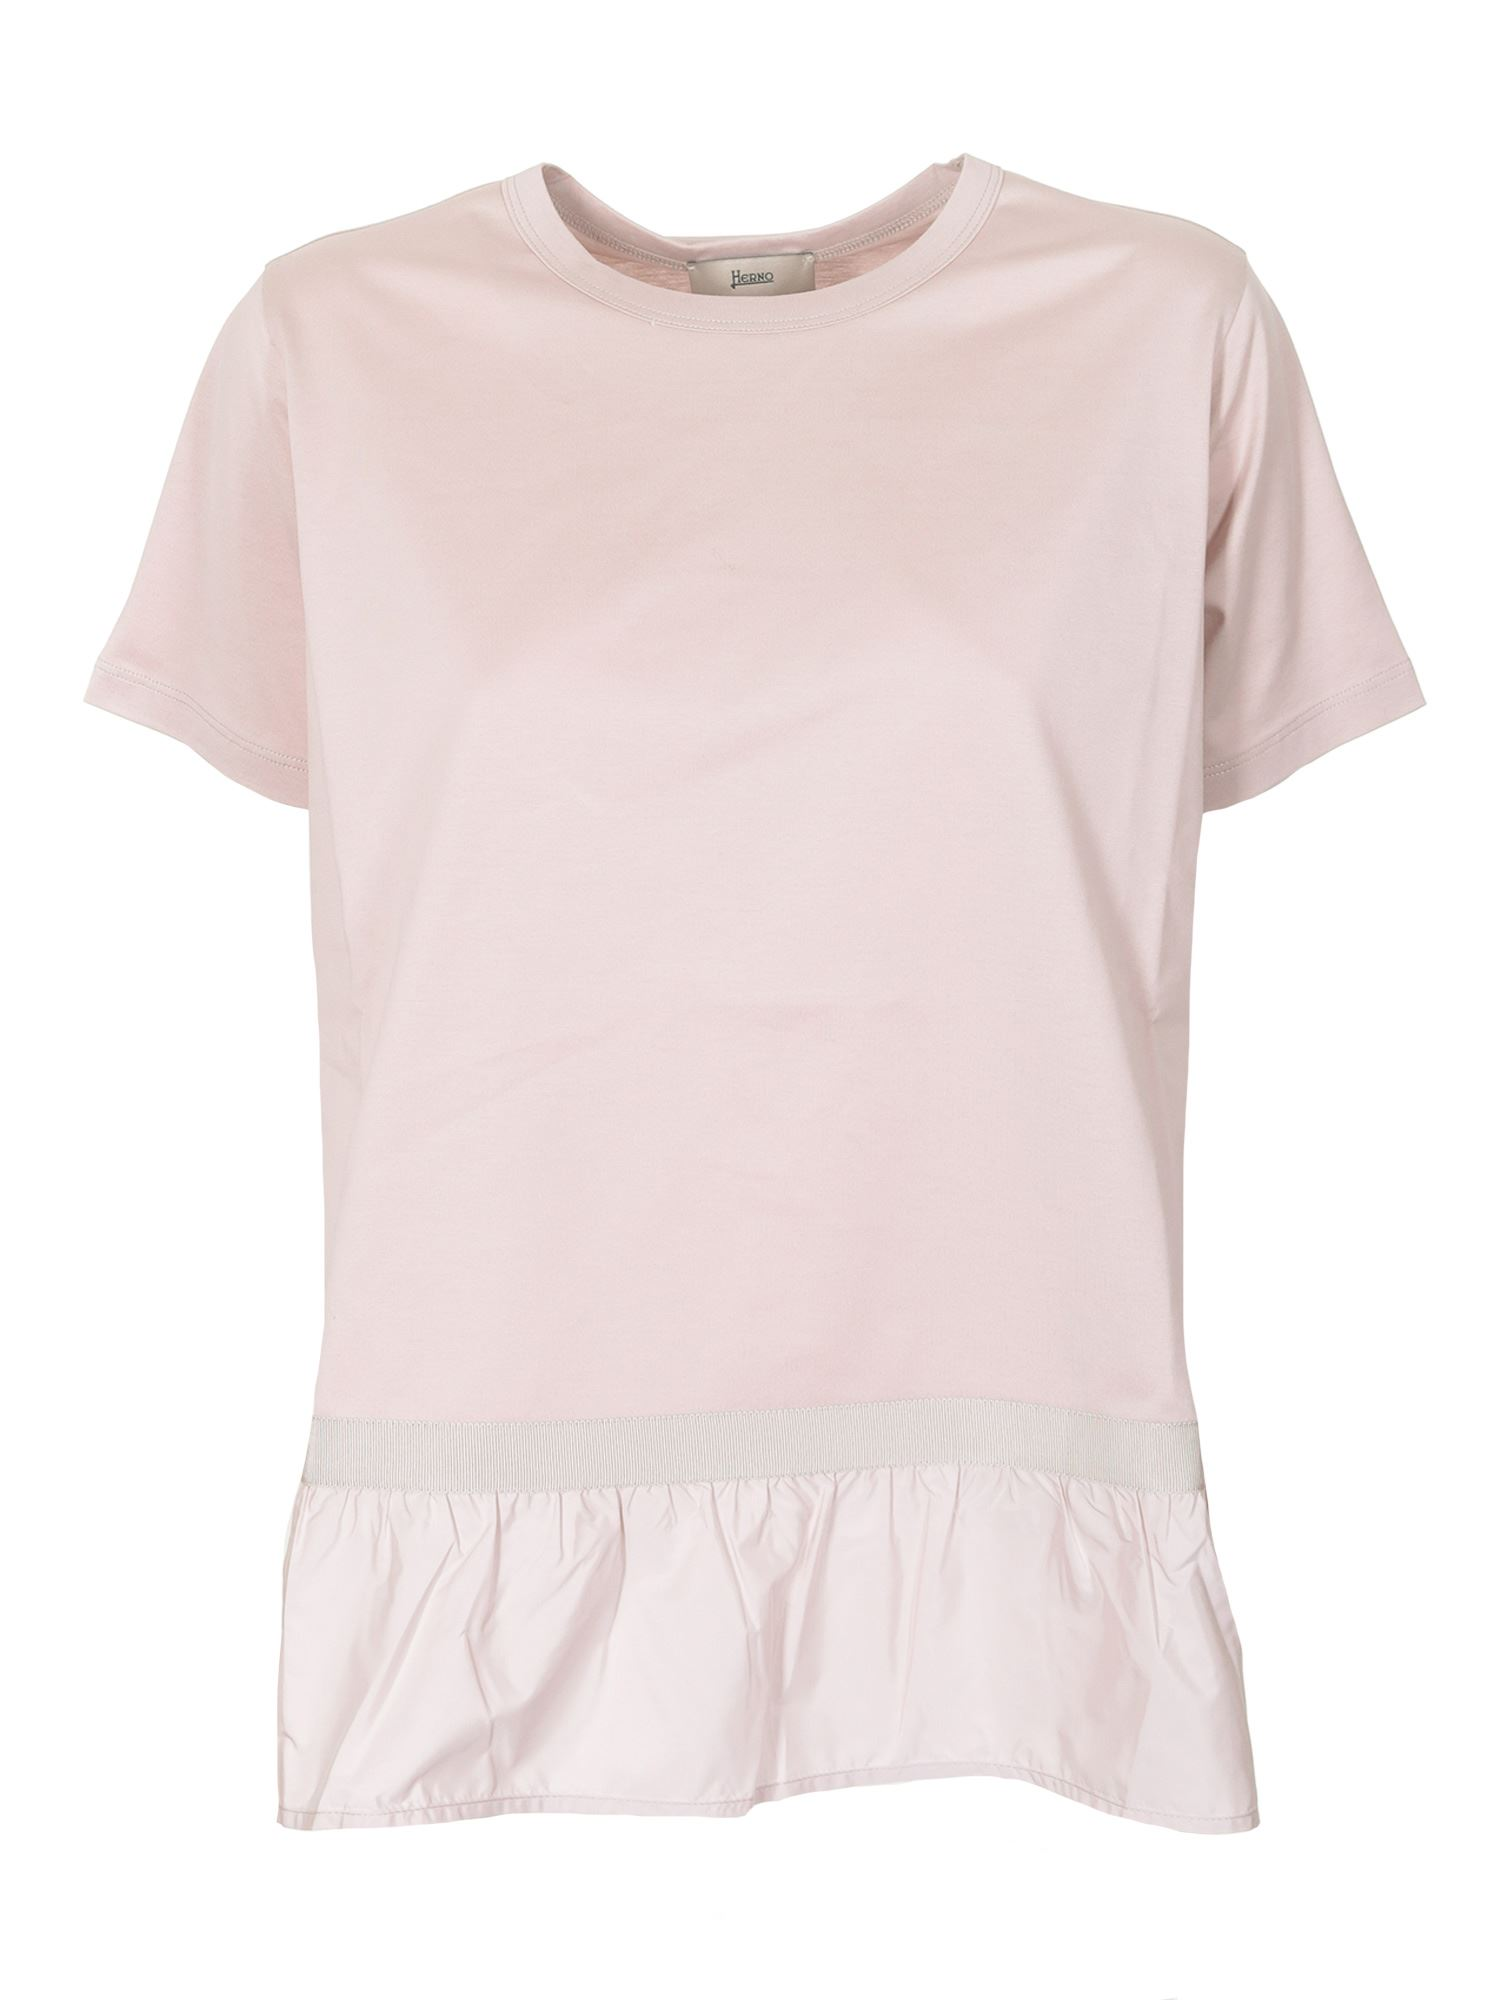 Herno FLOUNCED T-SHIRT IN PINK